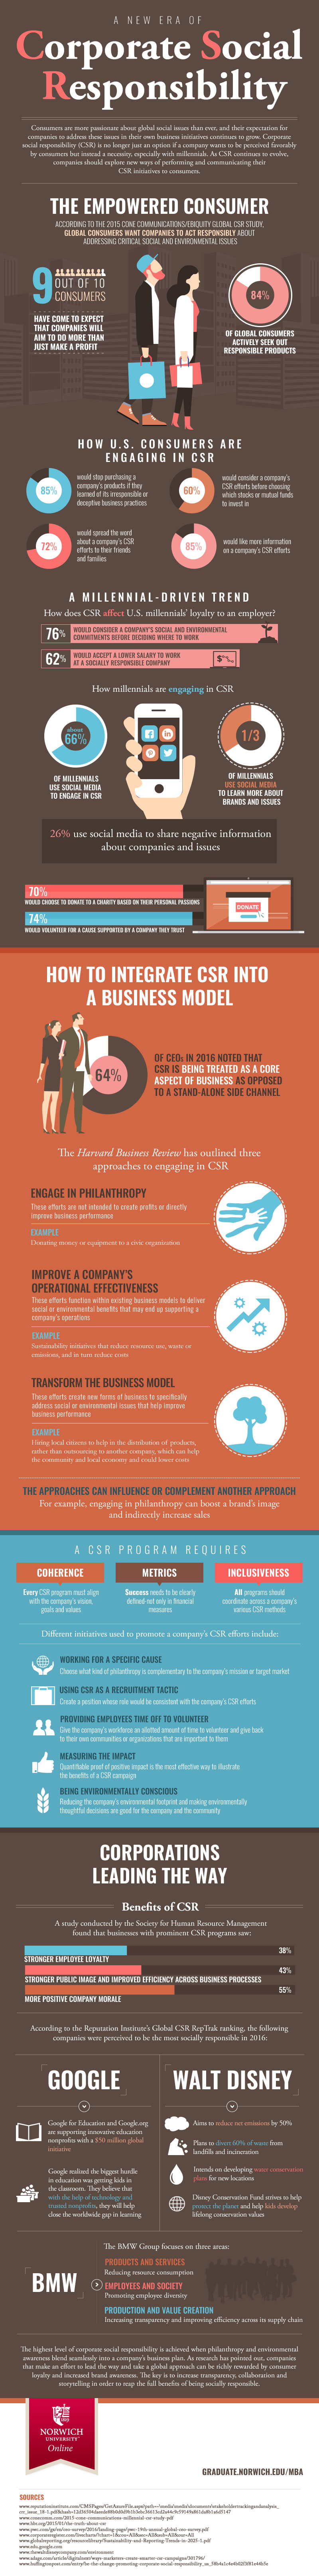 New Era Of Corporate Social Responsibility [Infographic]